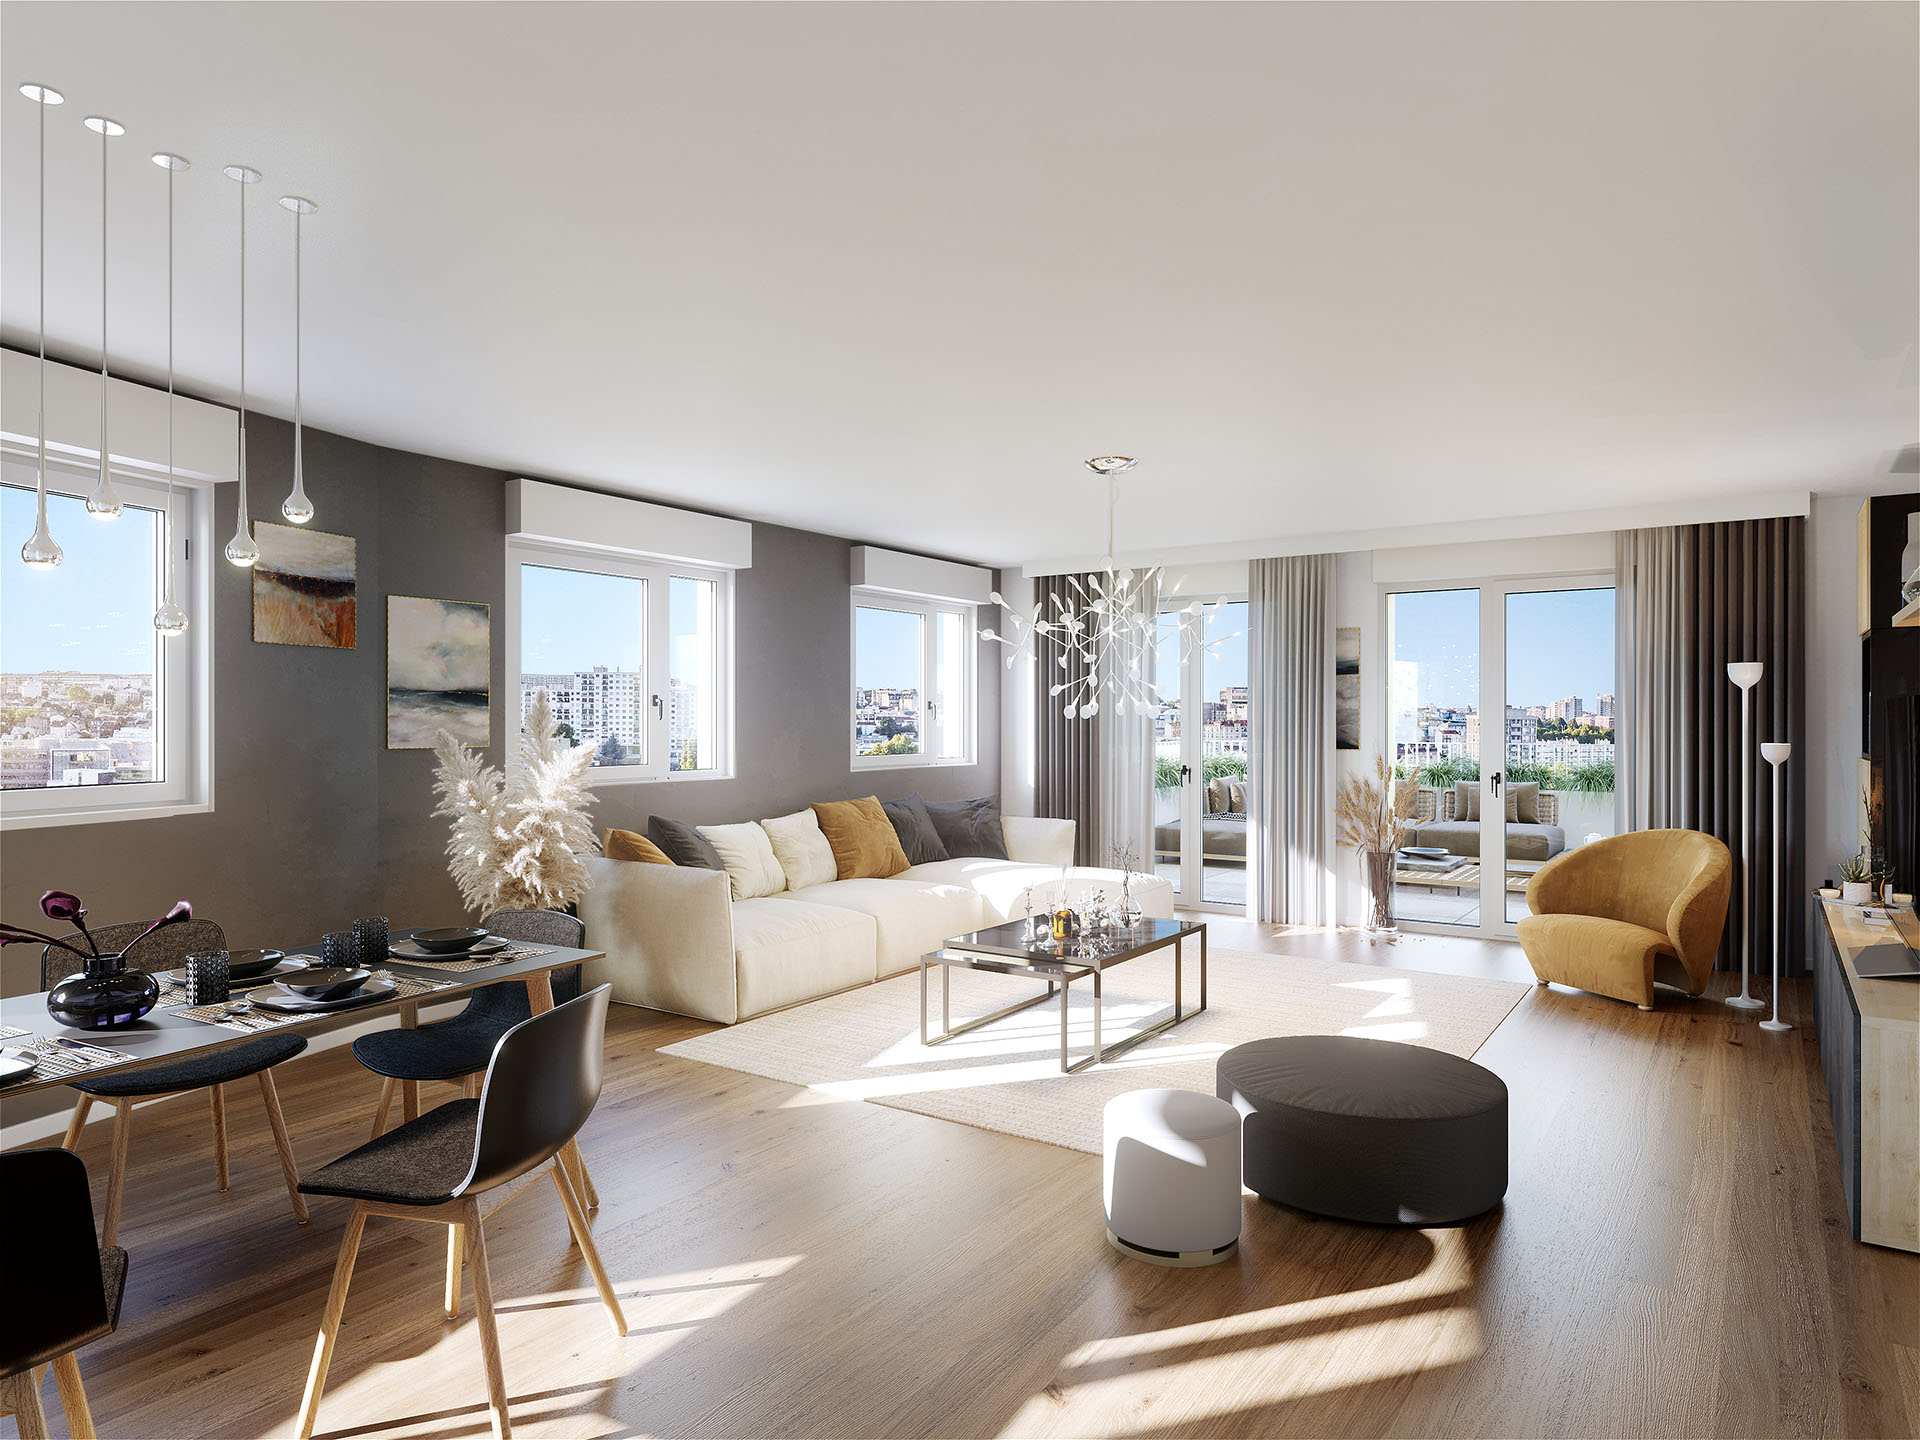 3D representation of a modern living room in Gentilly